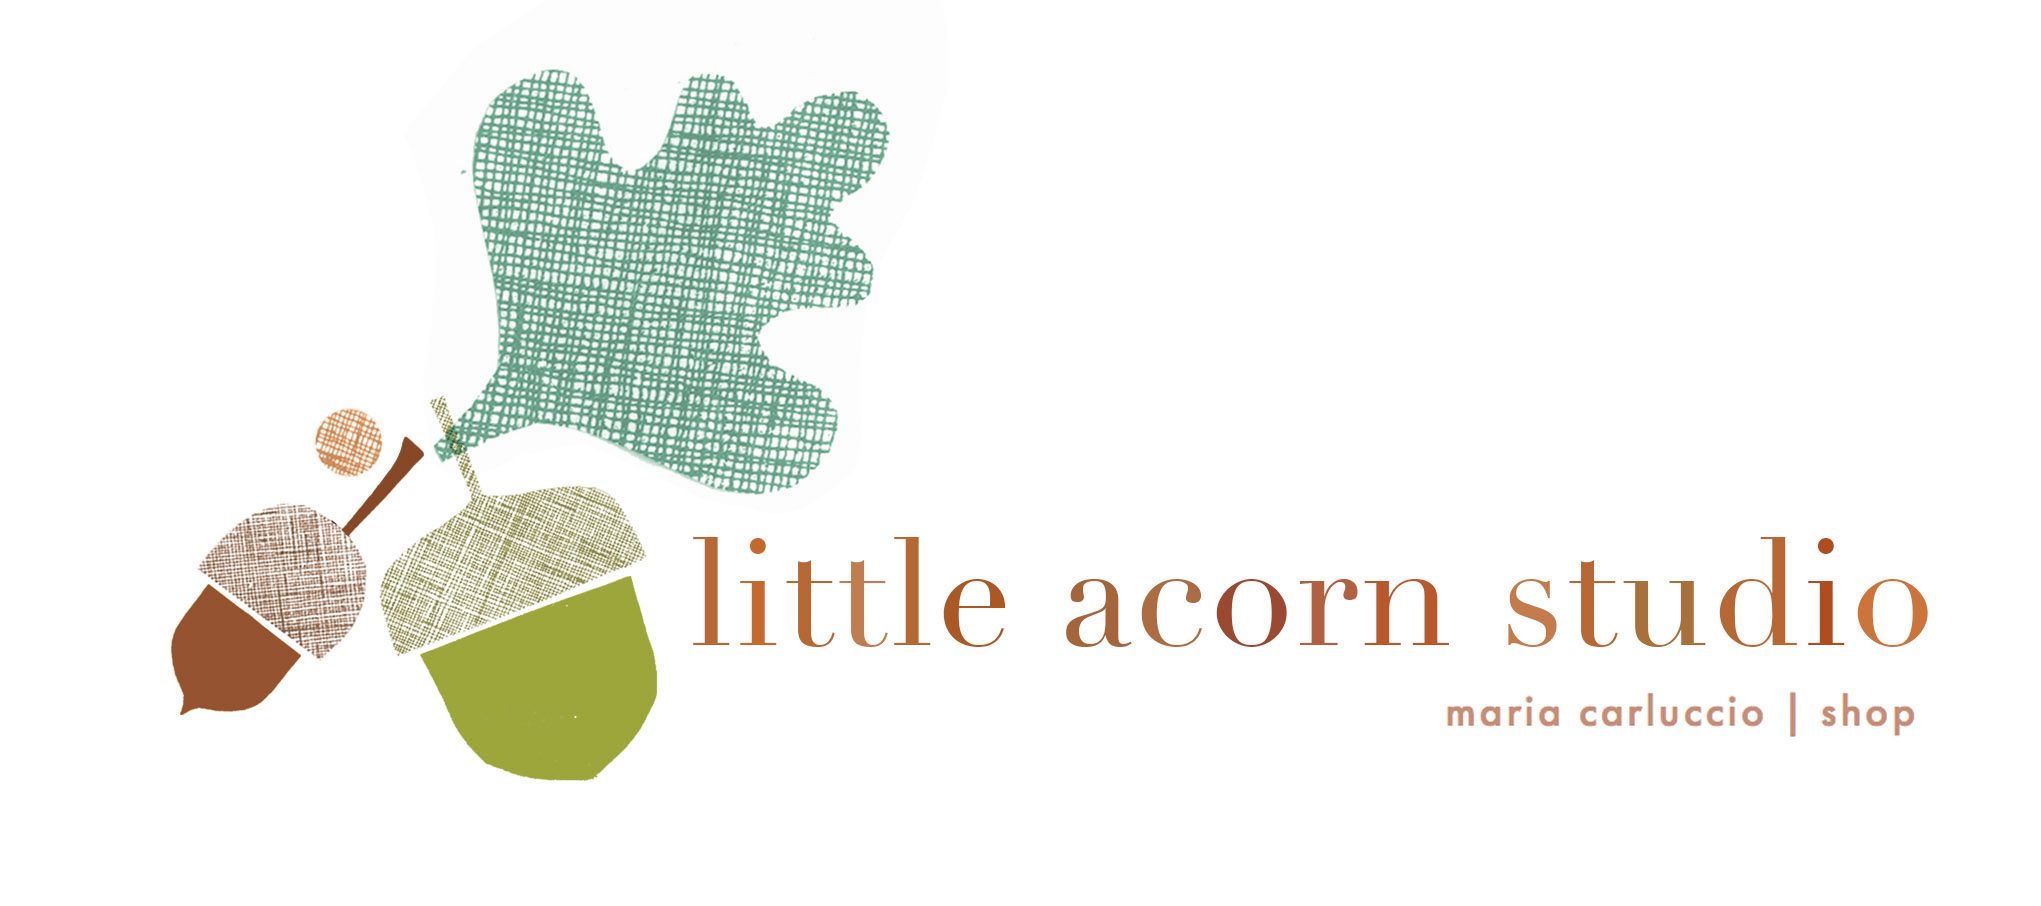 little acorn studio